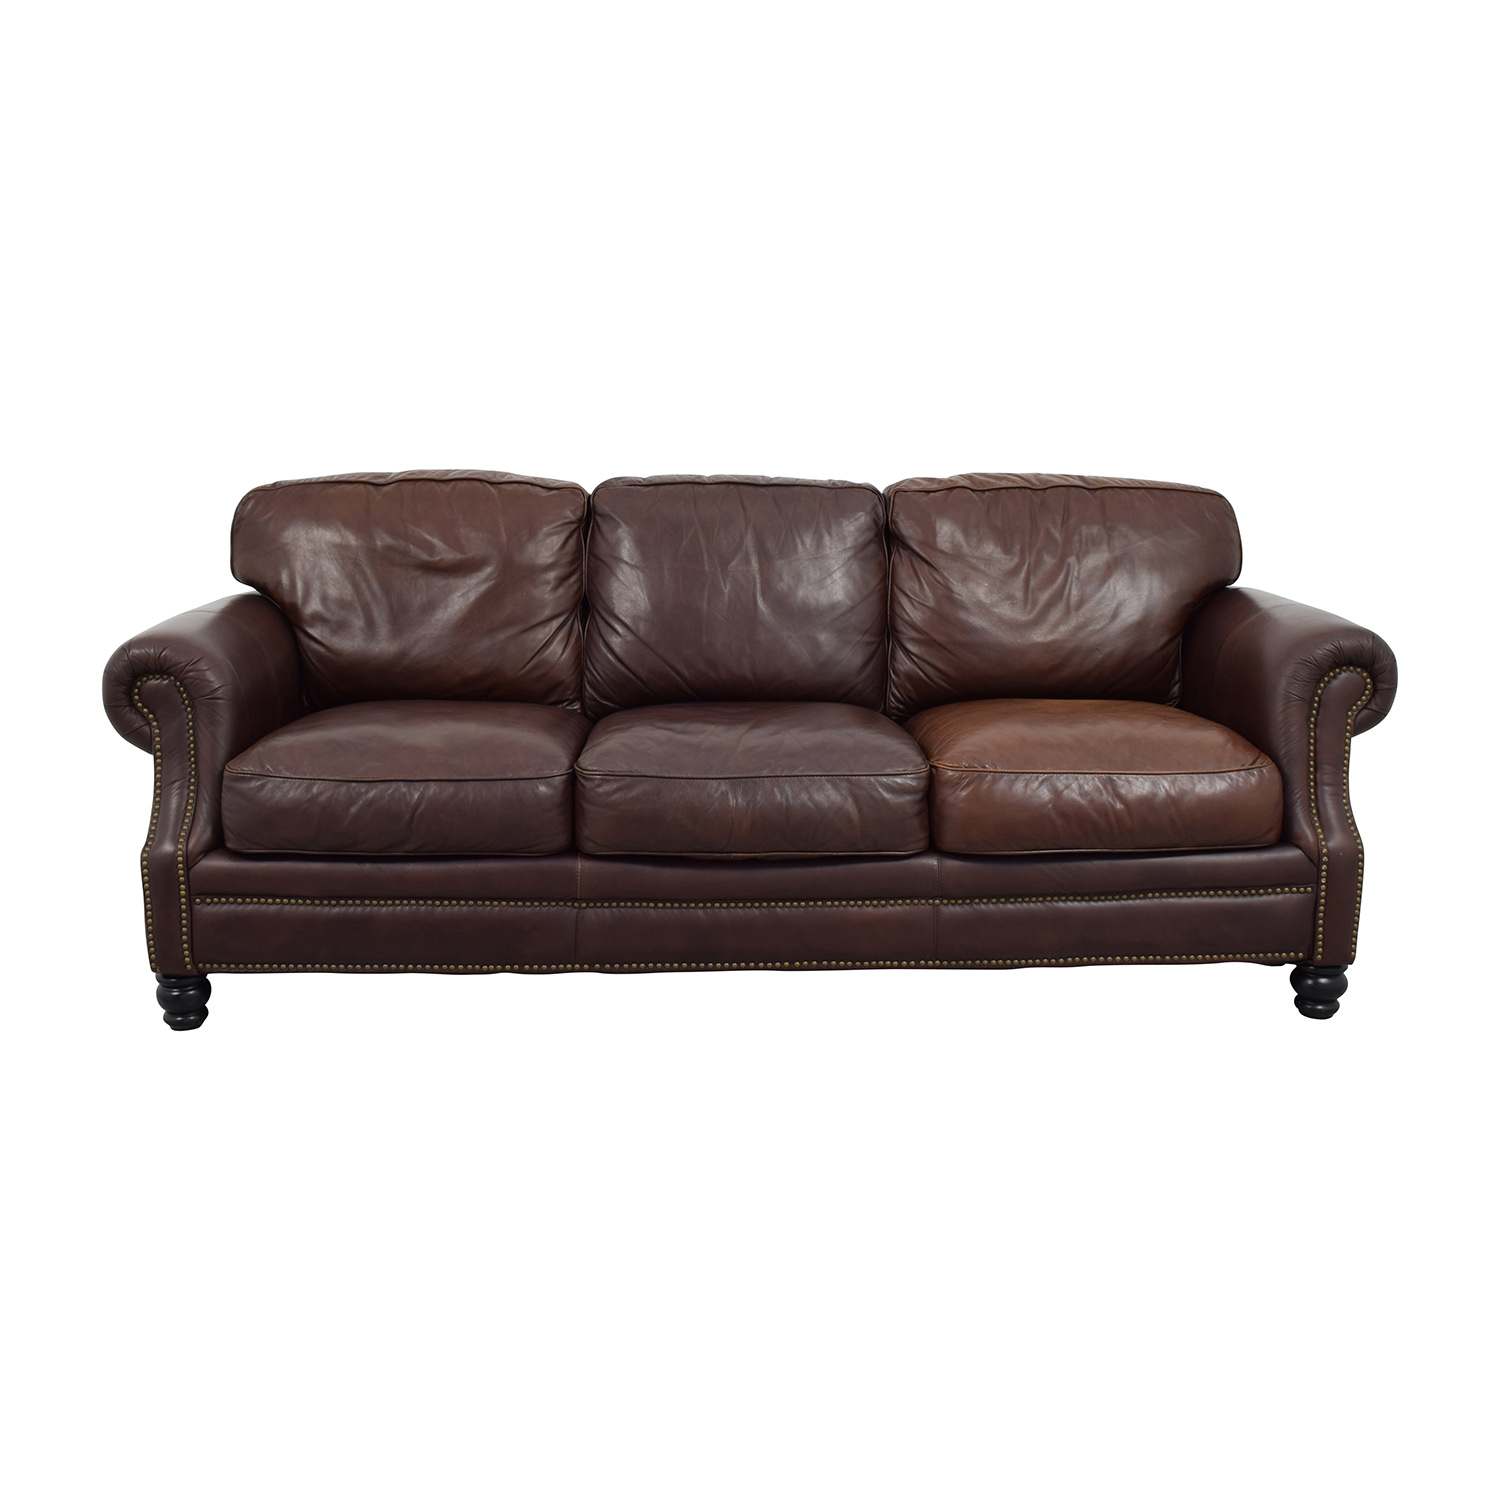 Pier 1 second hand second hand for Brown leather couch with studs